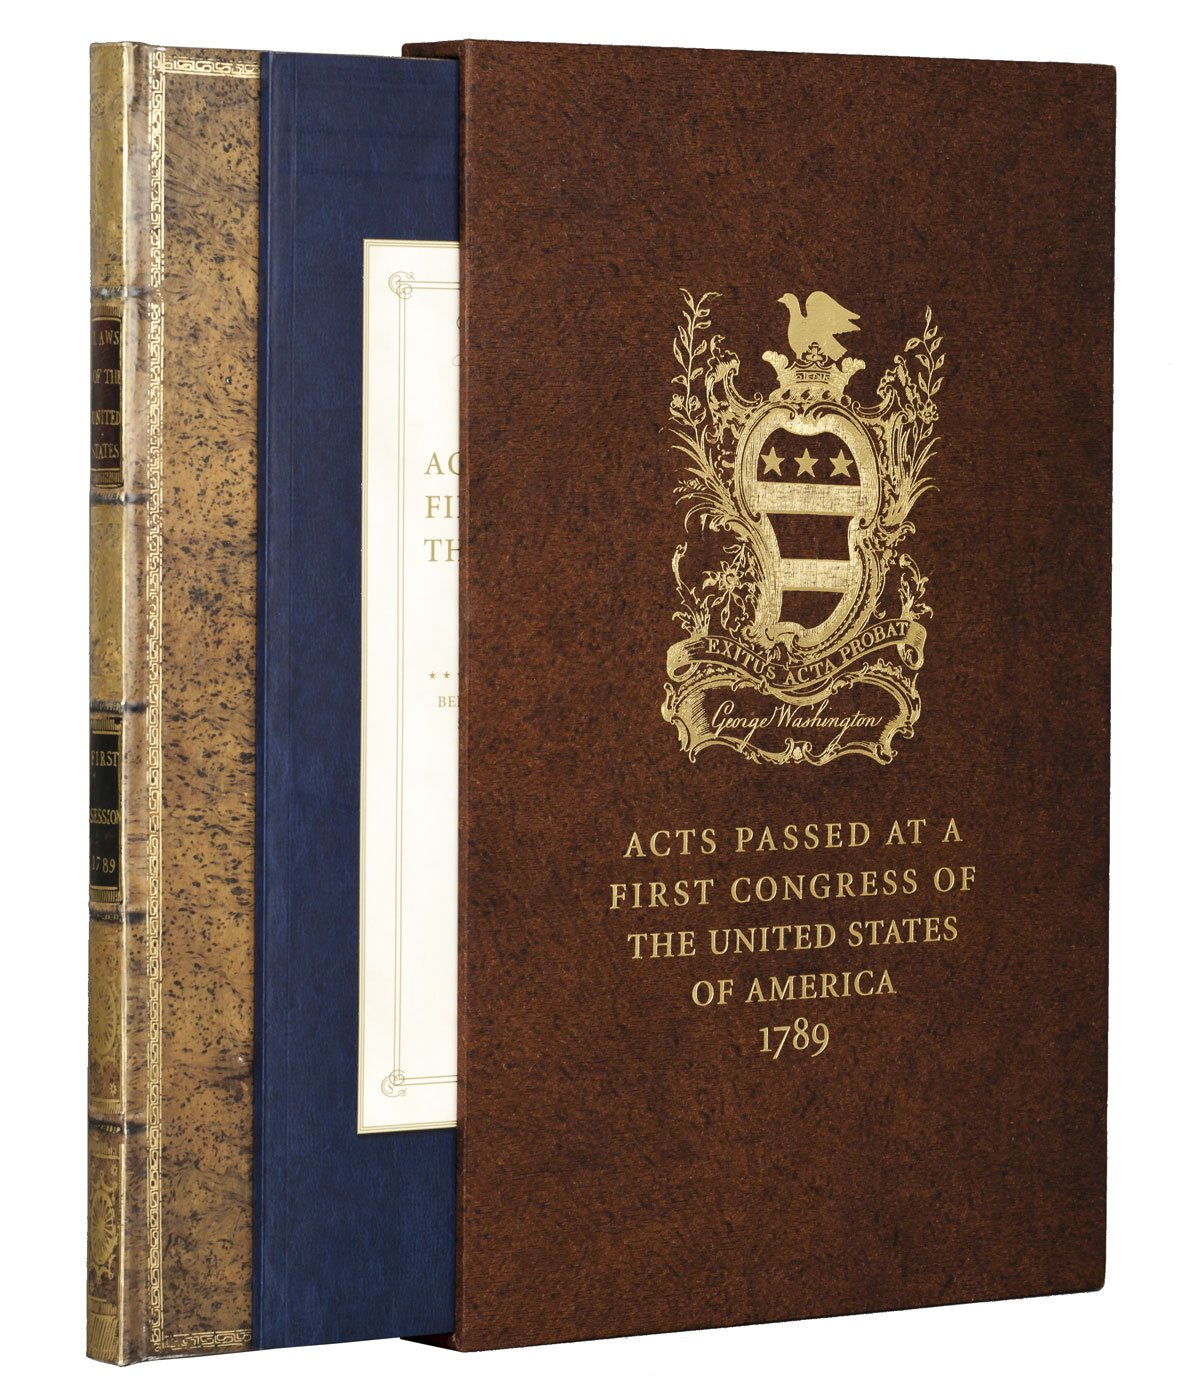 Acts of Congress 1789: Includes the Constitution and the Bill of Rights